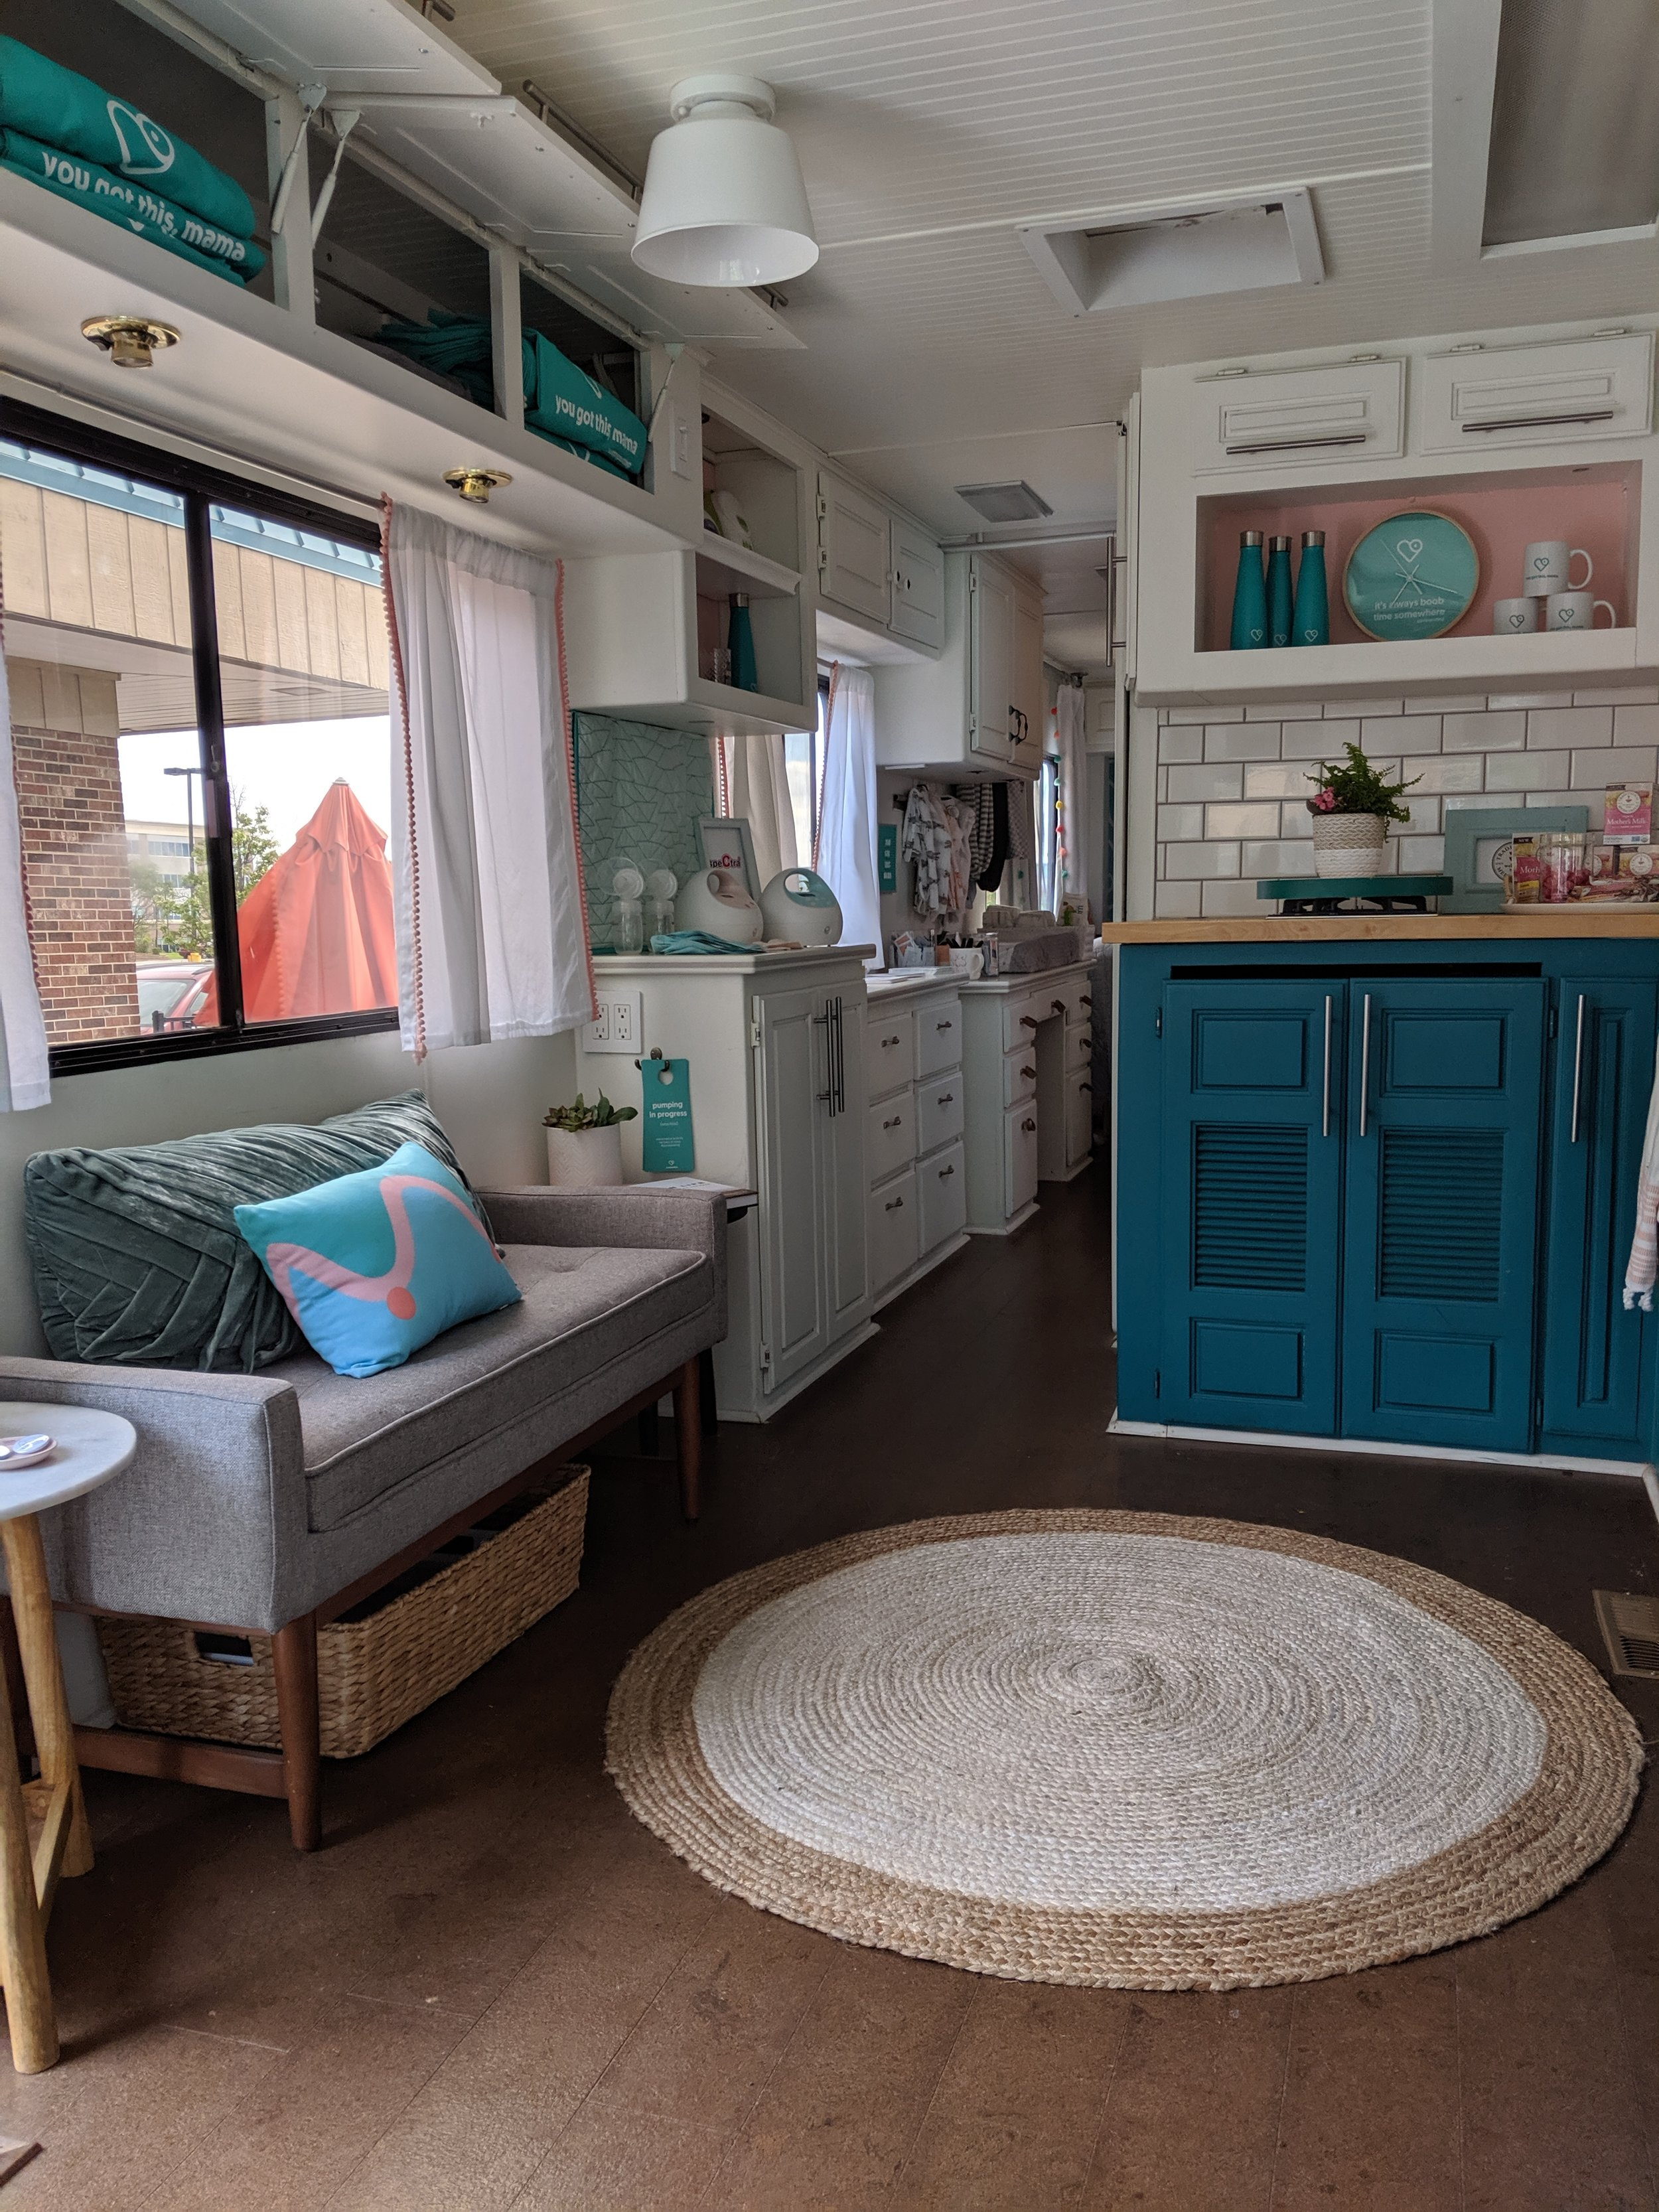 Beautiful bus and such a neat concept to help support mamas!